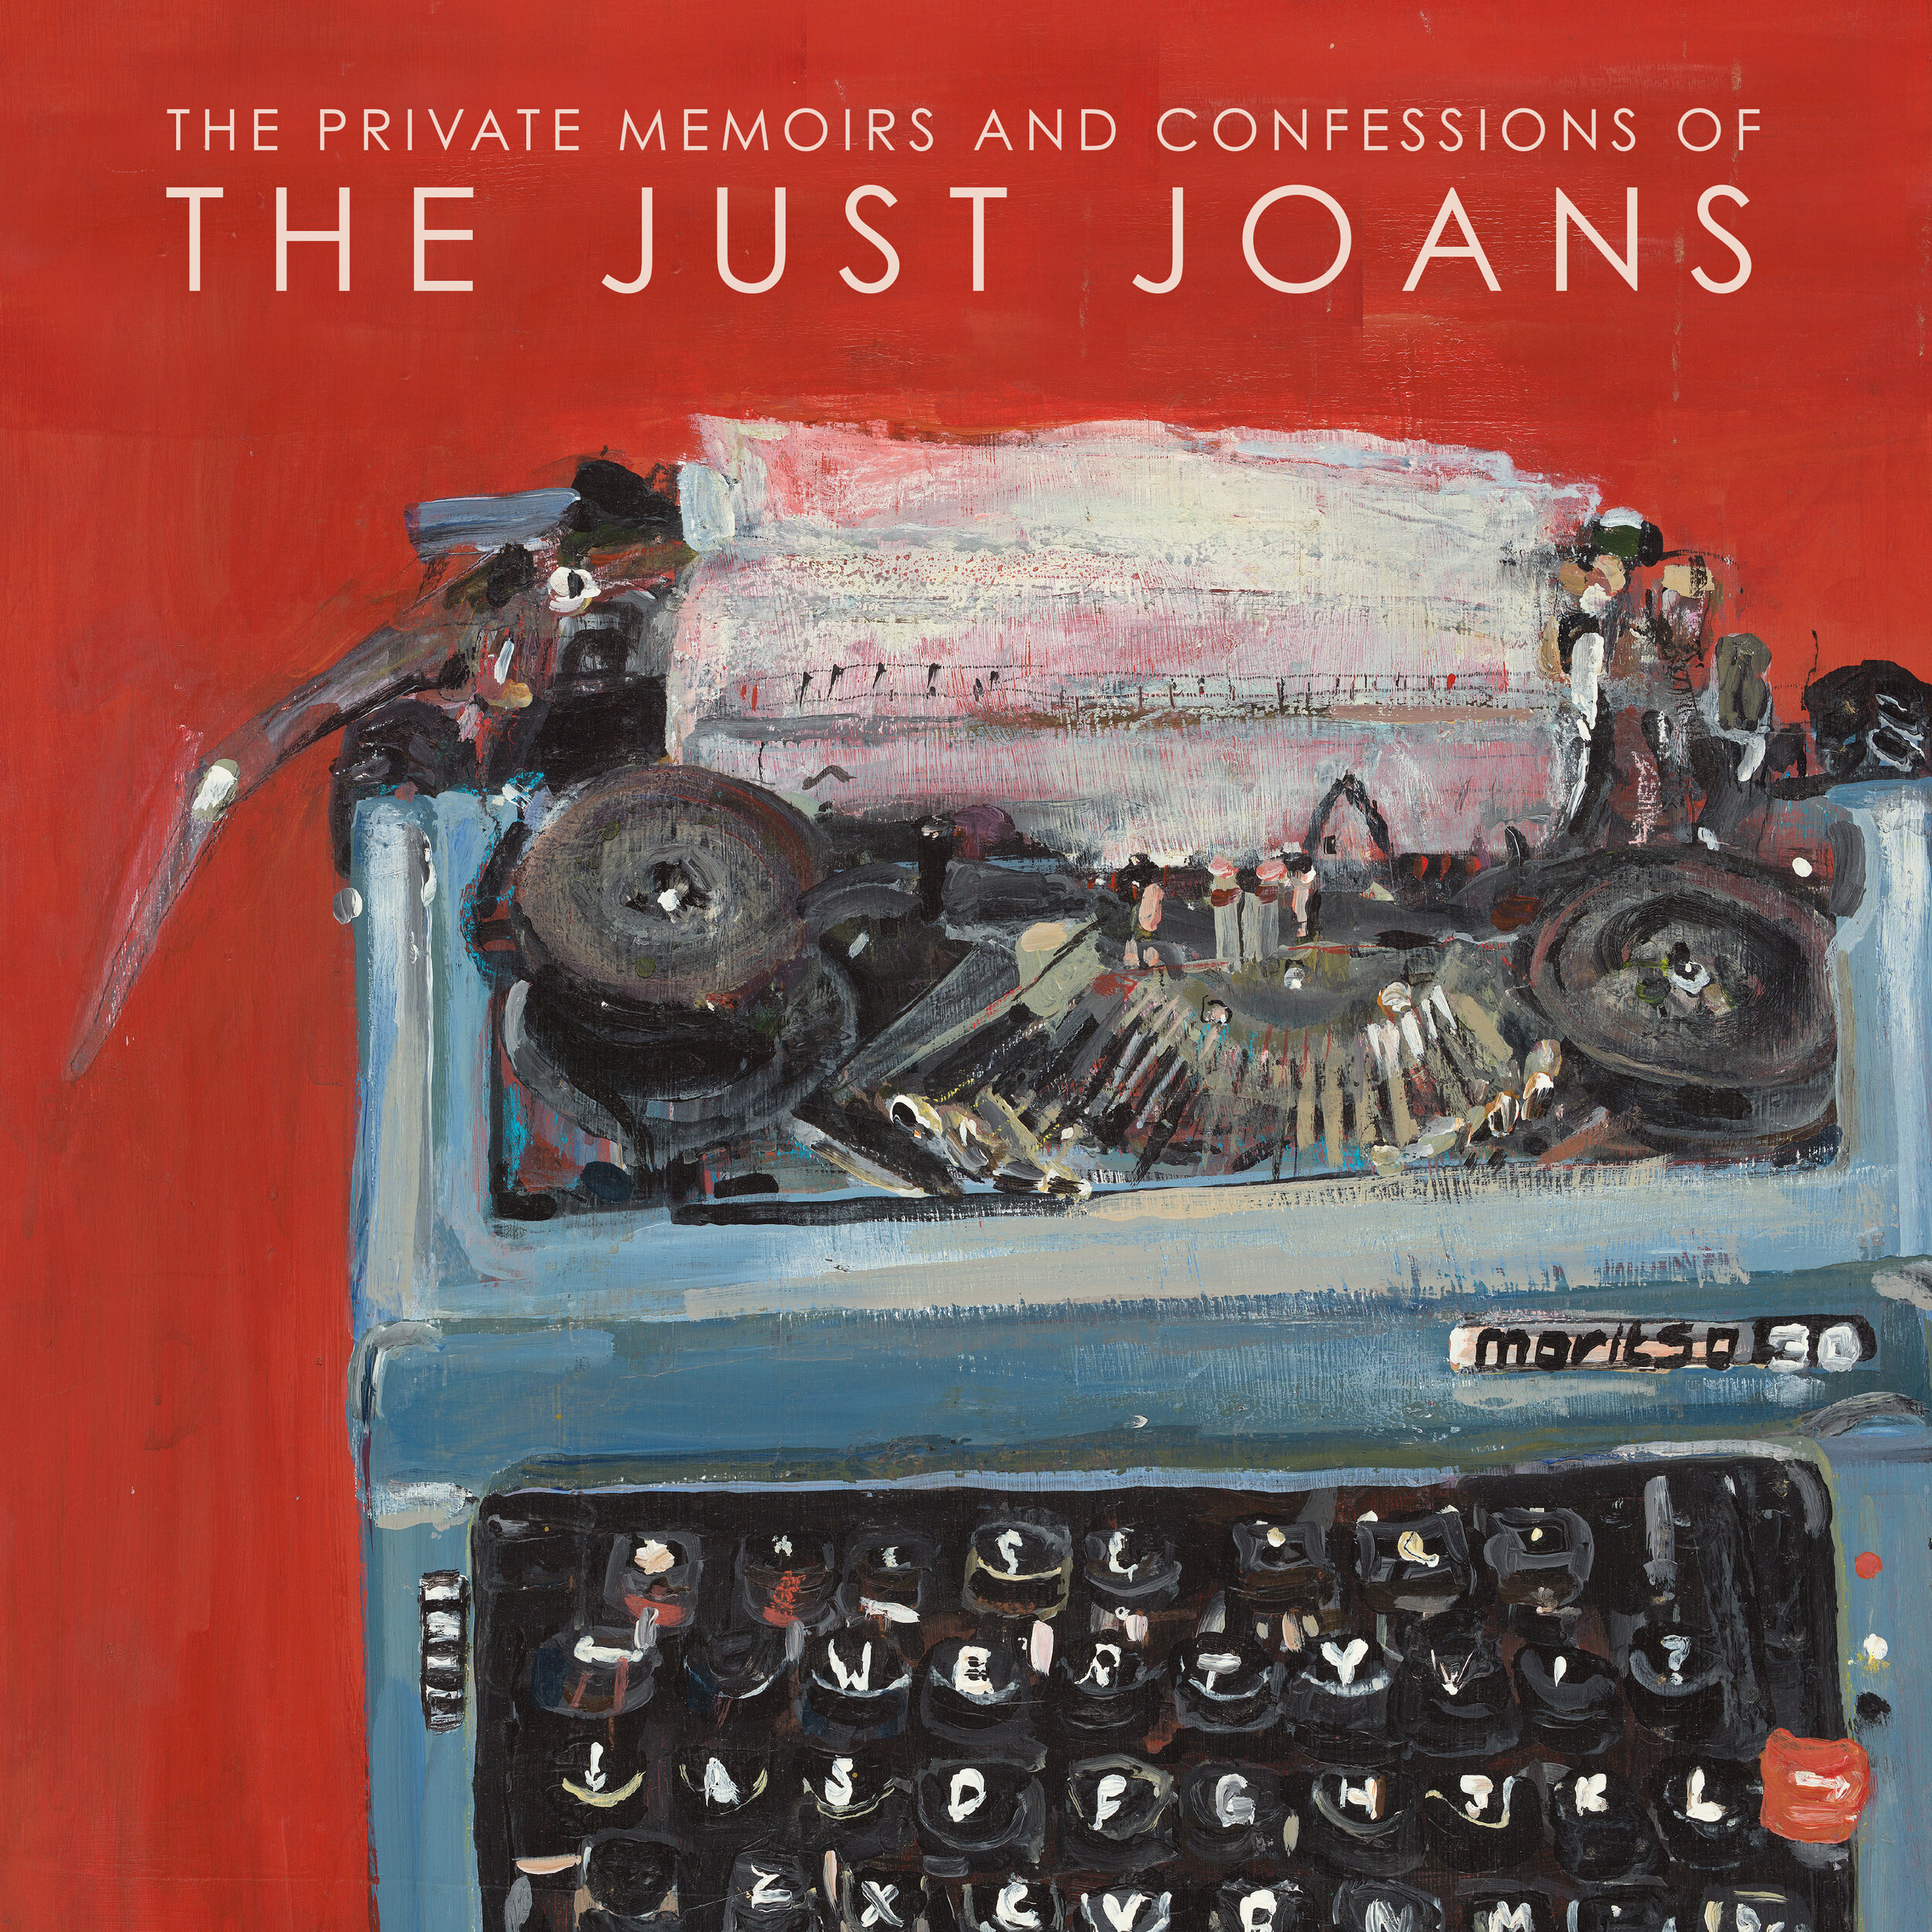 The Just Joans - The Private Memoirs and Confessions of The Just Joans